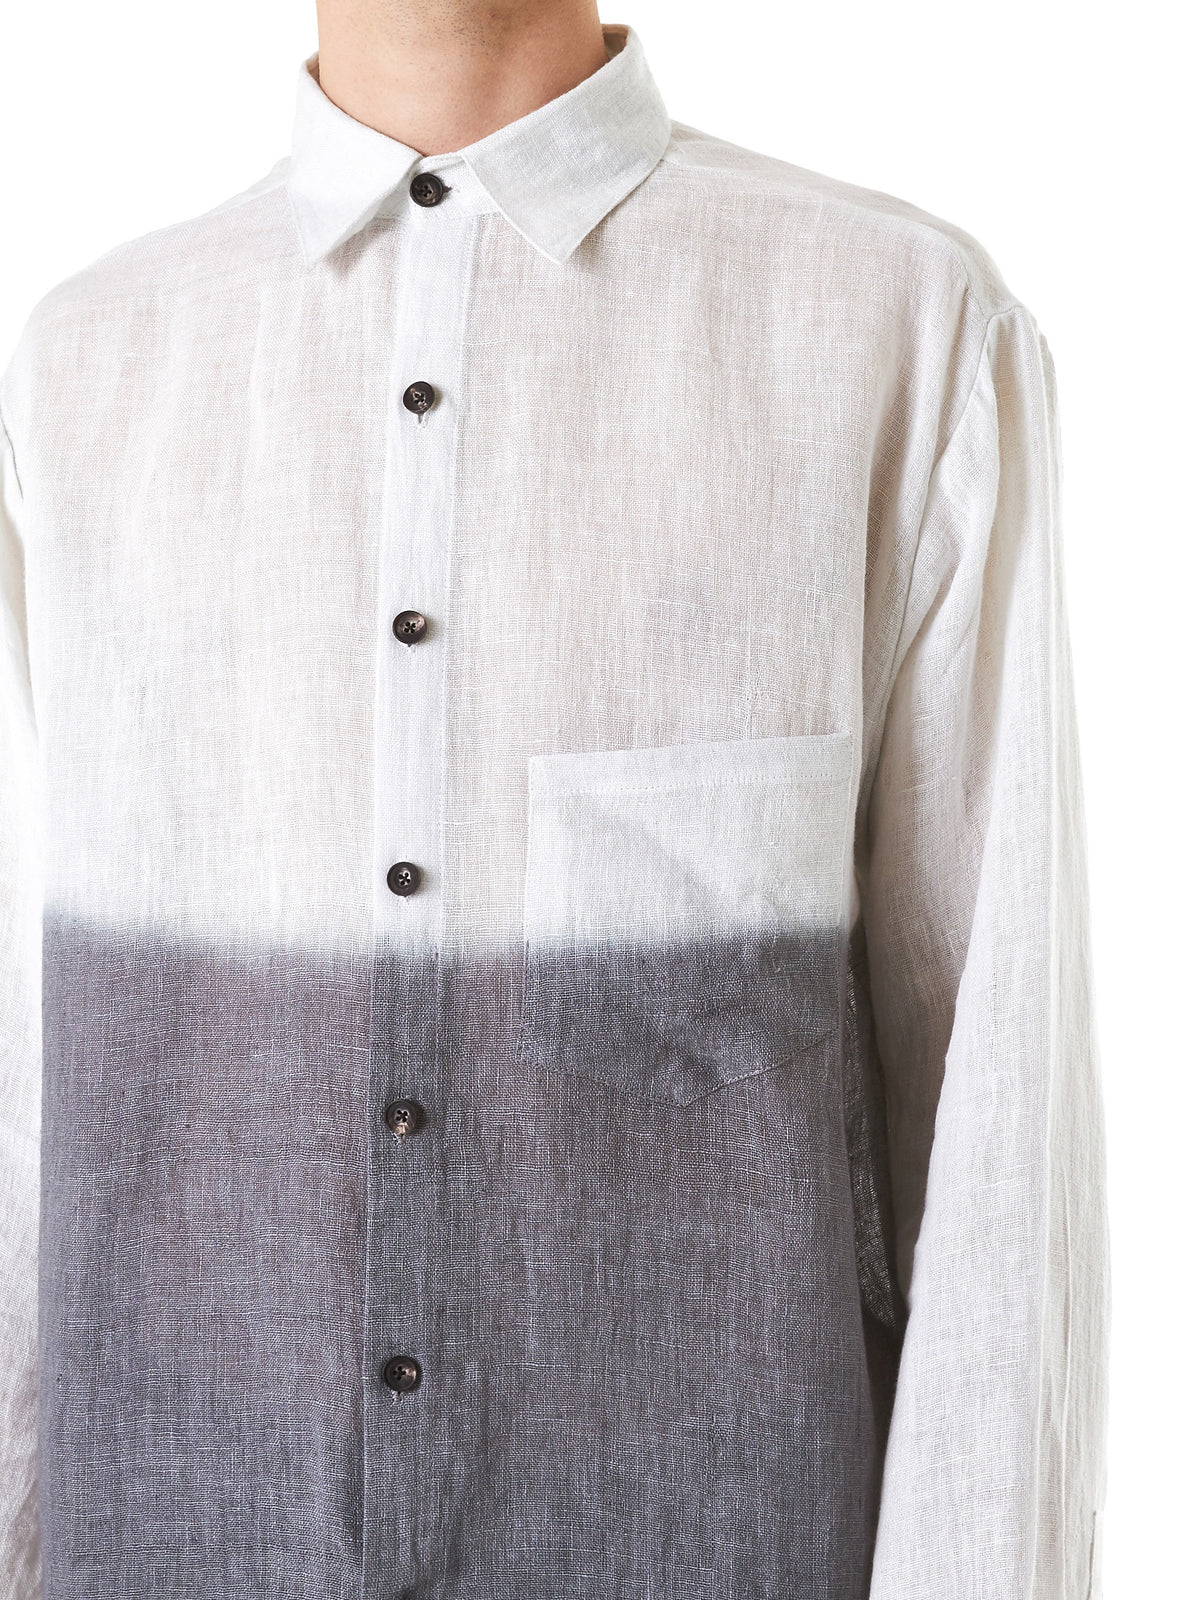 Tritone Button-Down Shirt (TIE-DYE-WHITE-CHARCOAL-BLACK) - H. Lorenzo